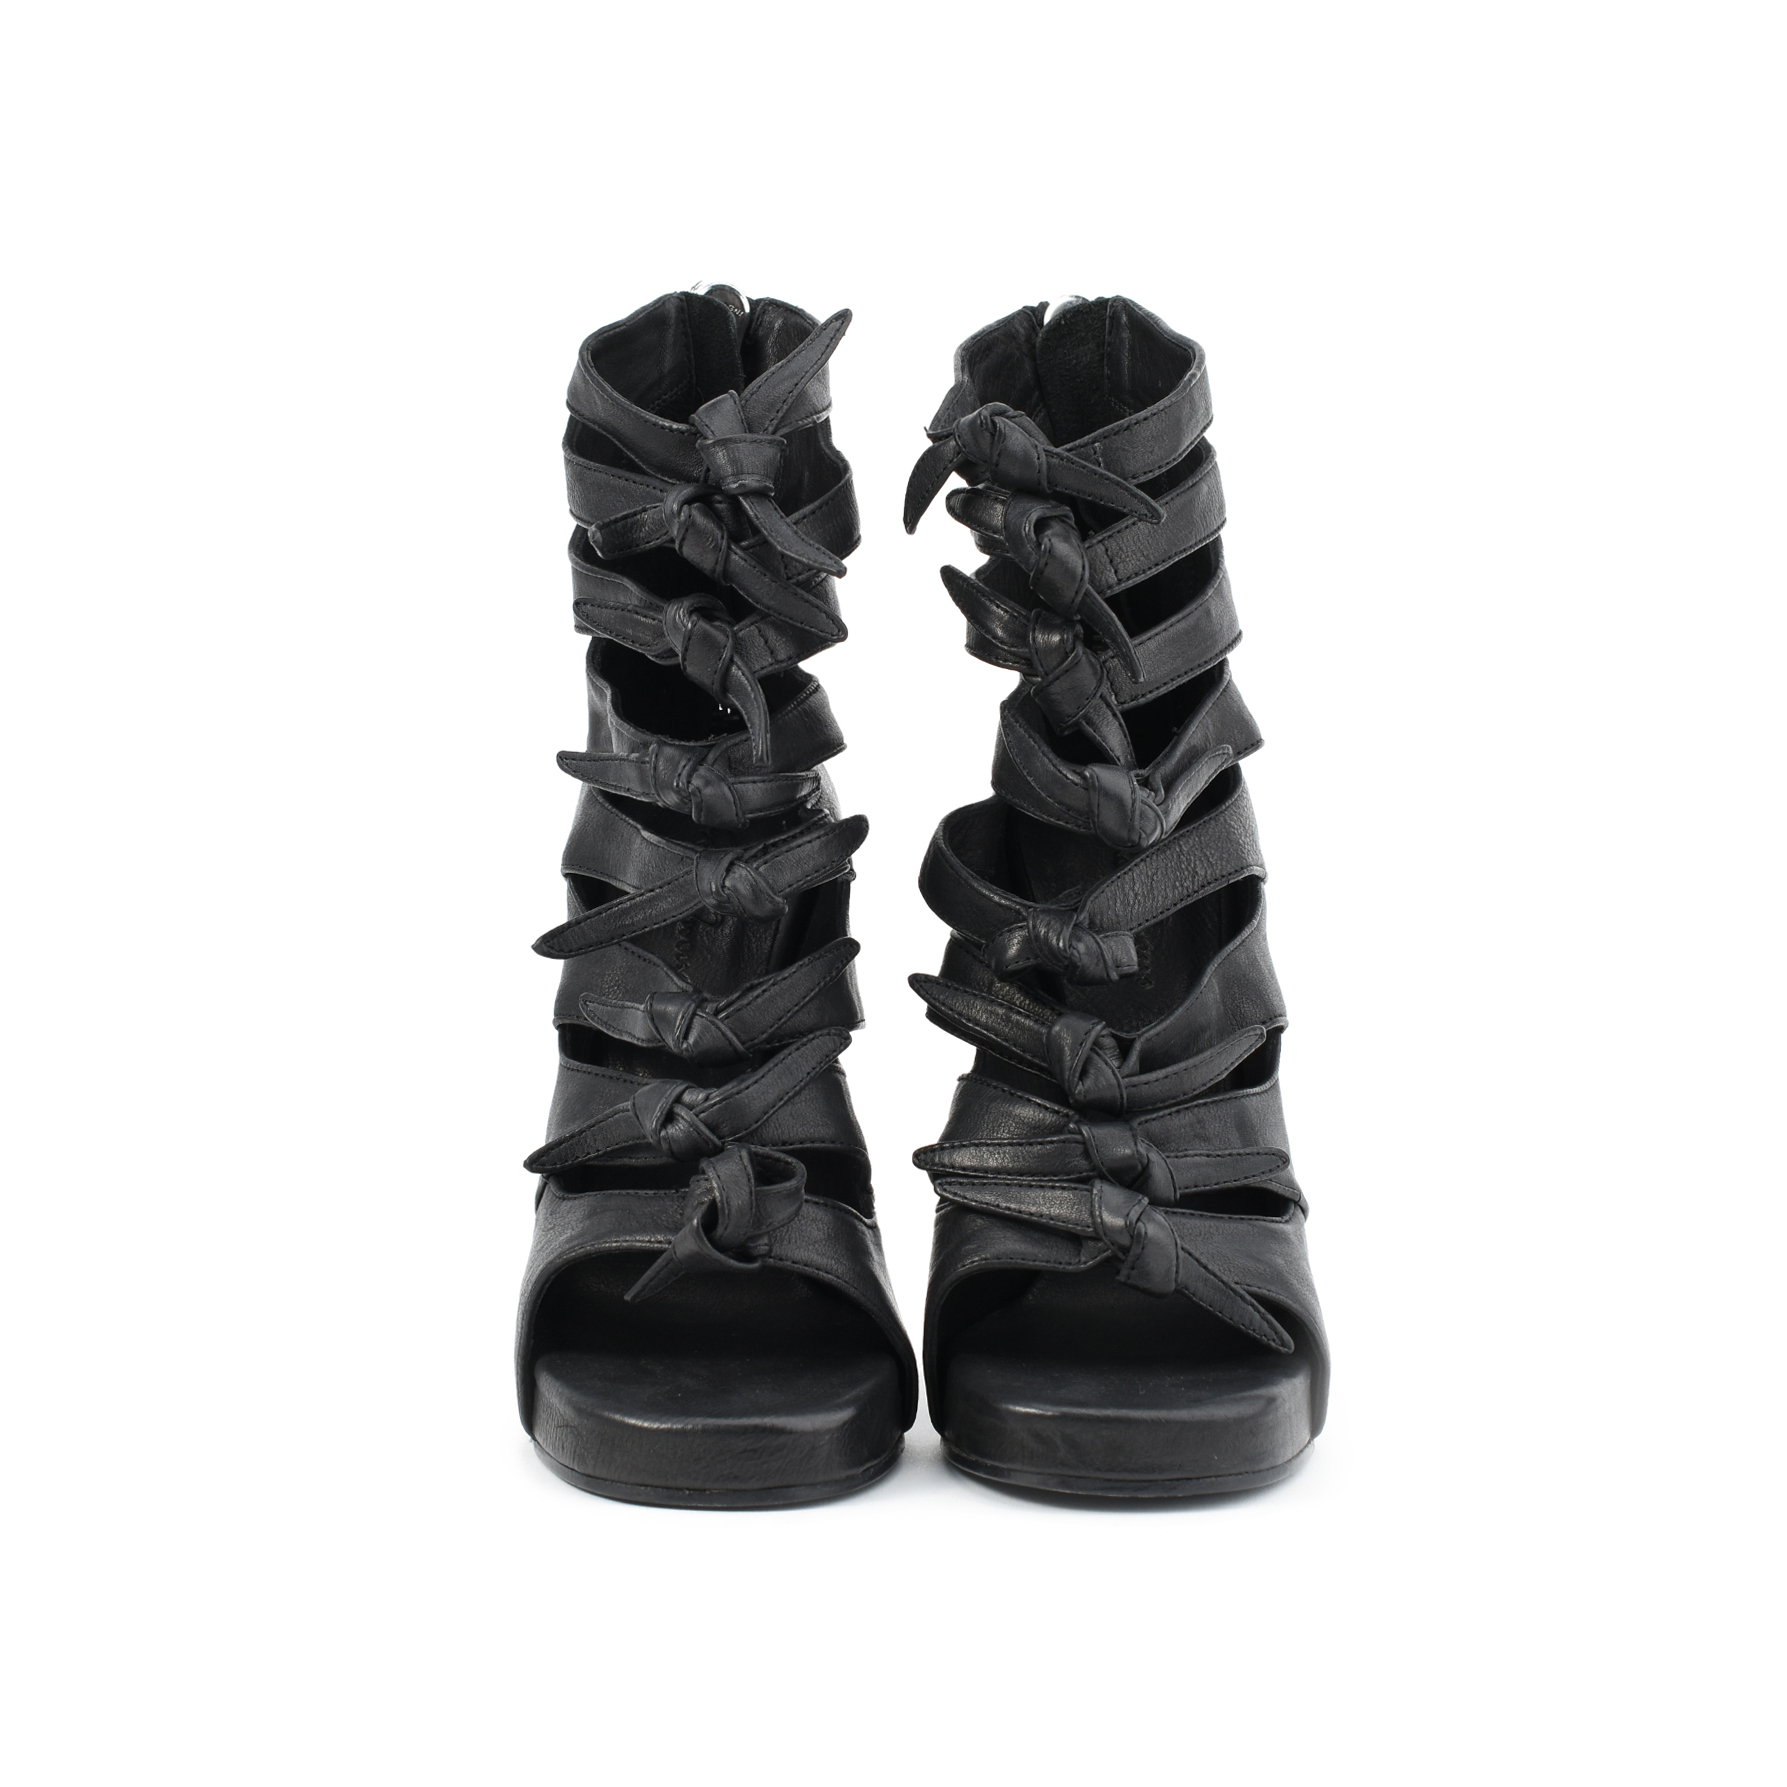 411771ad20a2 Authentic Second Hand Rick Owens Knotted Multi-Strap Sandals  (PSS-413-00011)